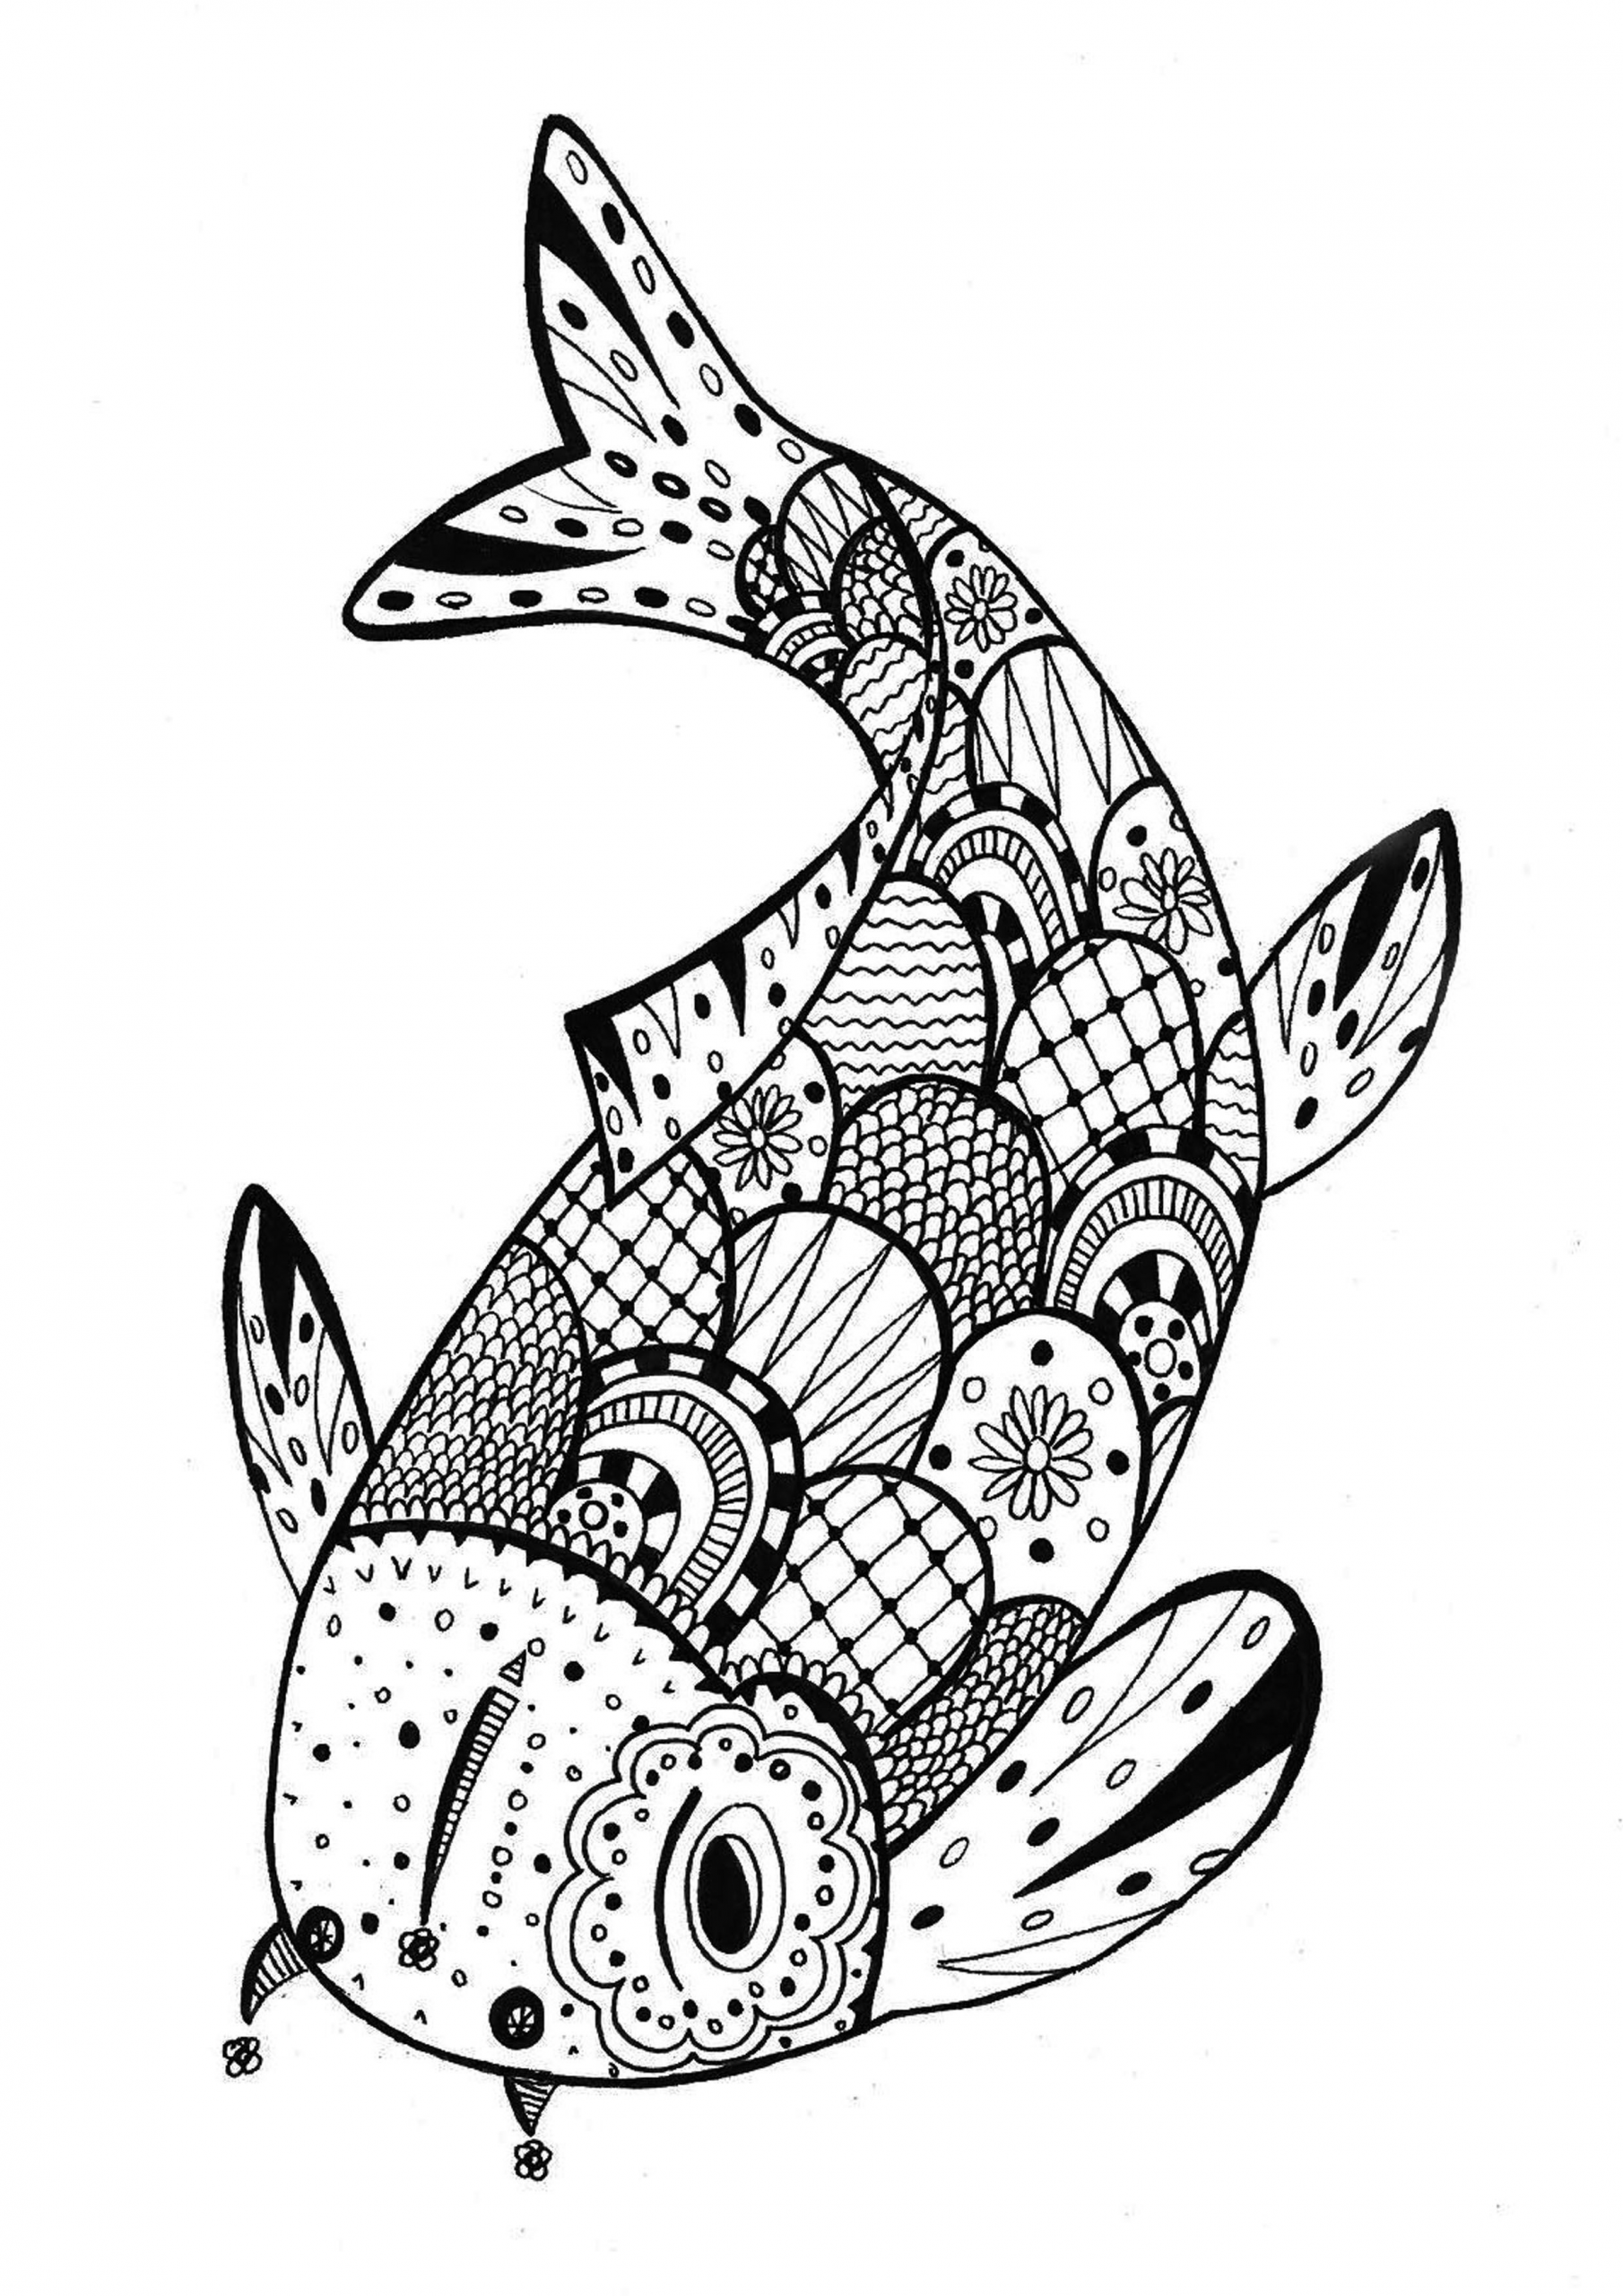 Gold Fish Coloring Page Youngandtae Com Zoo Animal Coloring Pages Animal Coloring Books Whale Coloring Pages